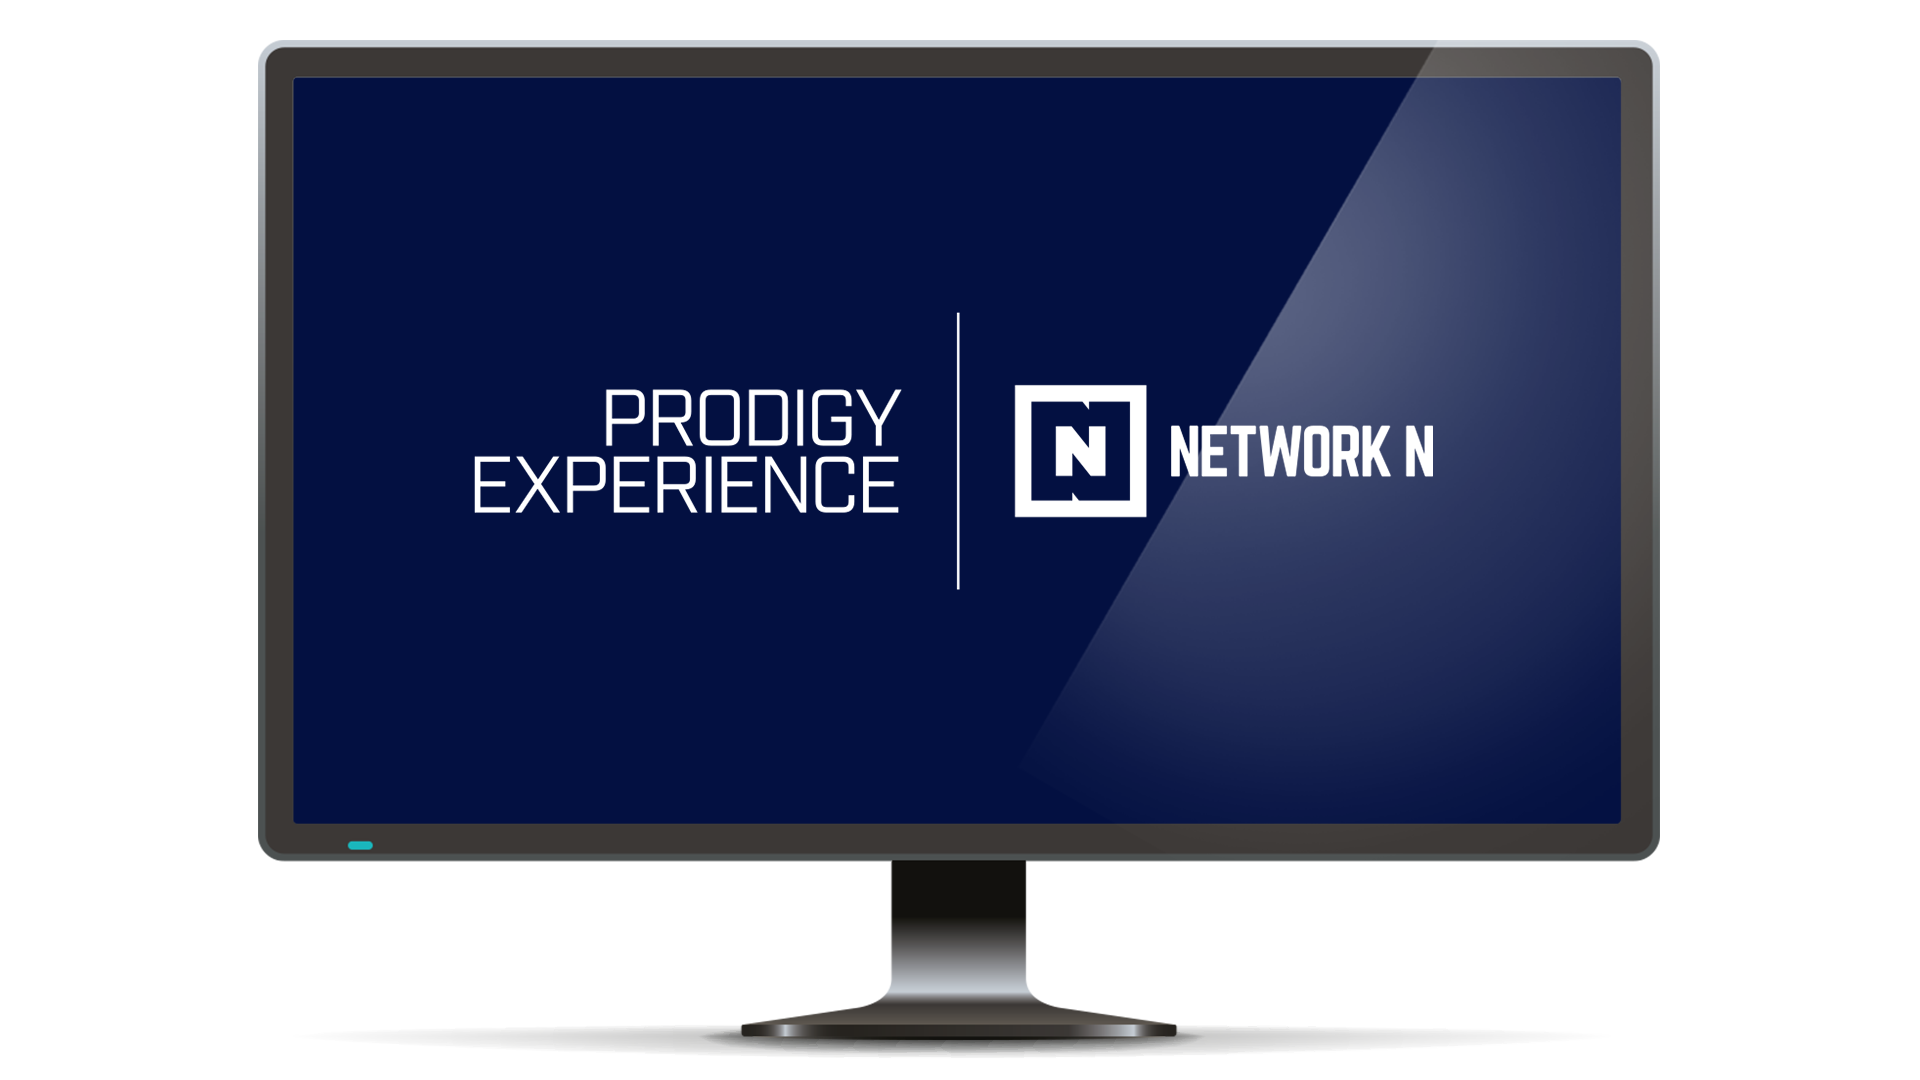 Introducing the Prodigy Experience